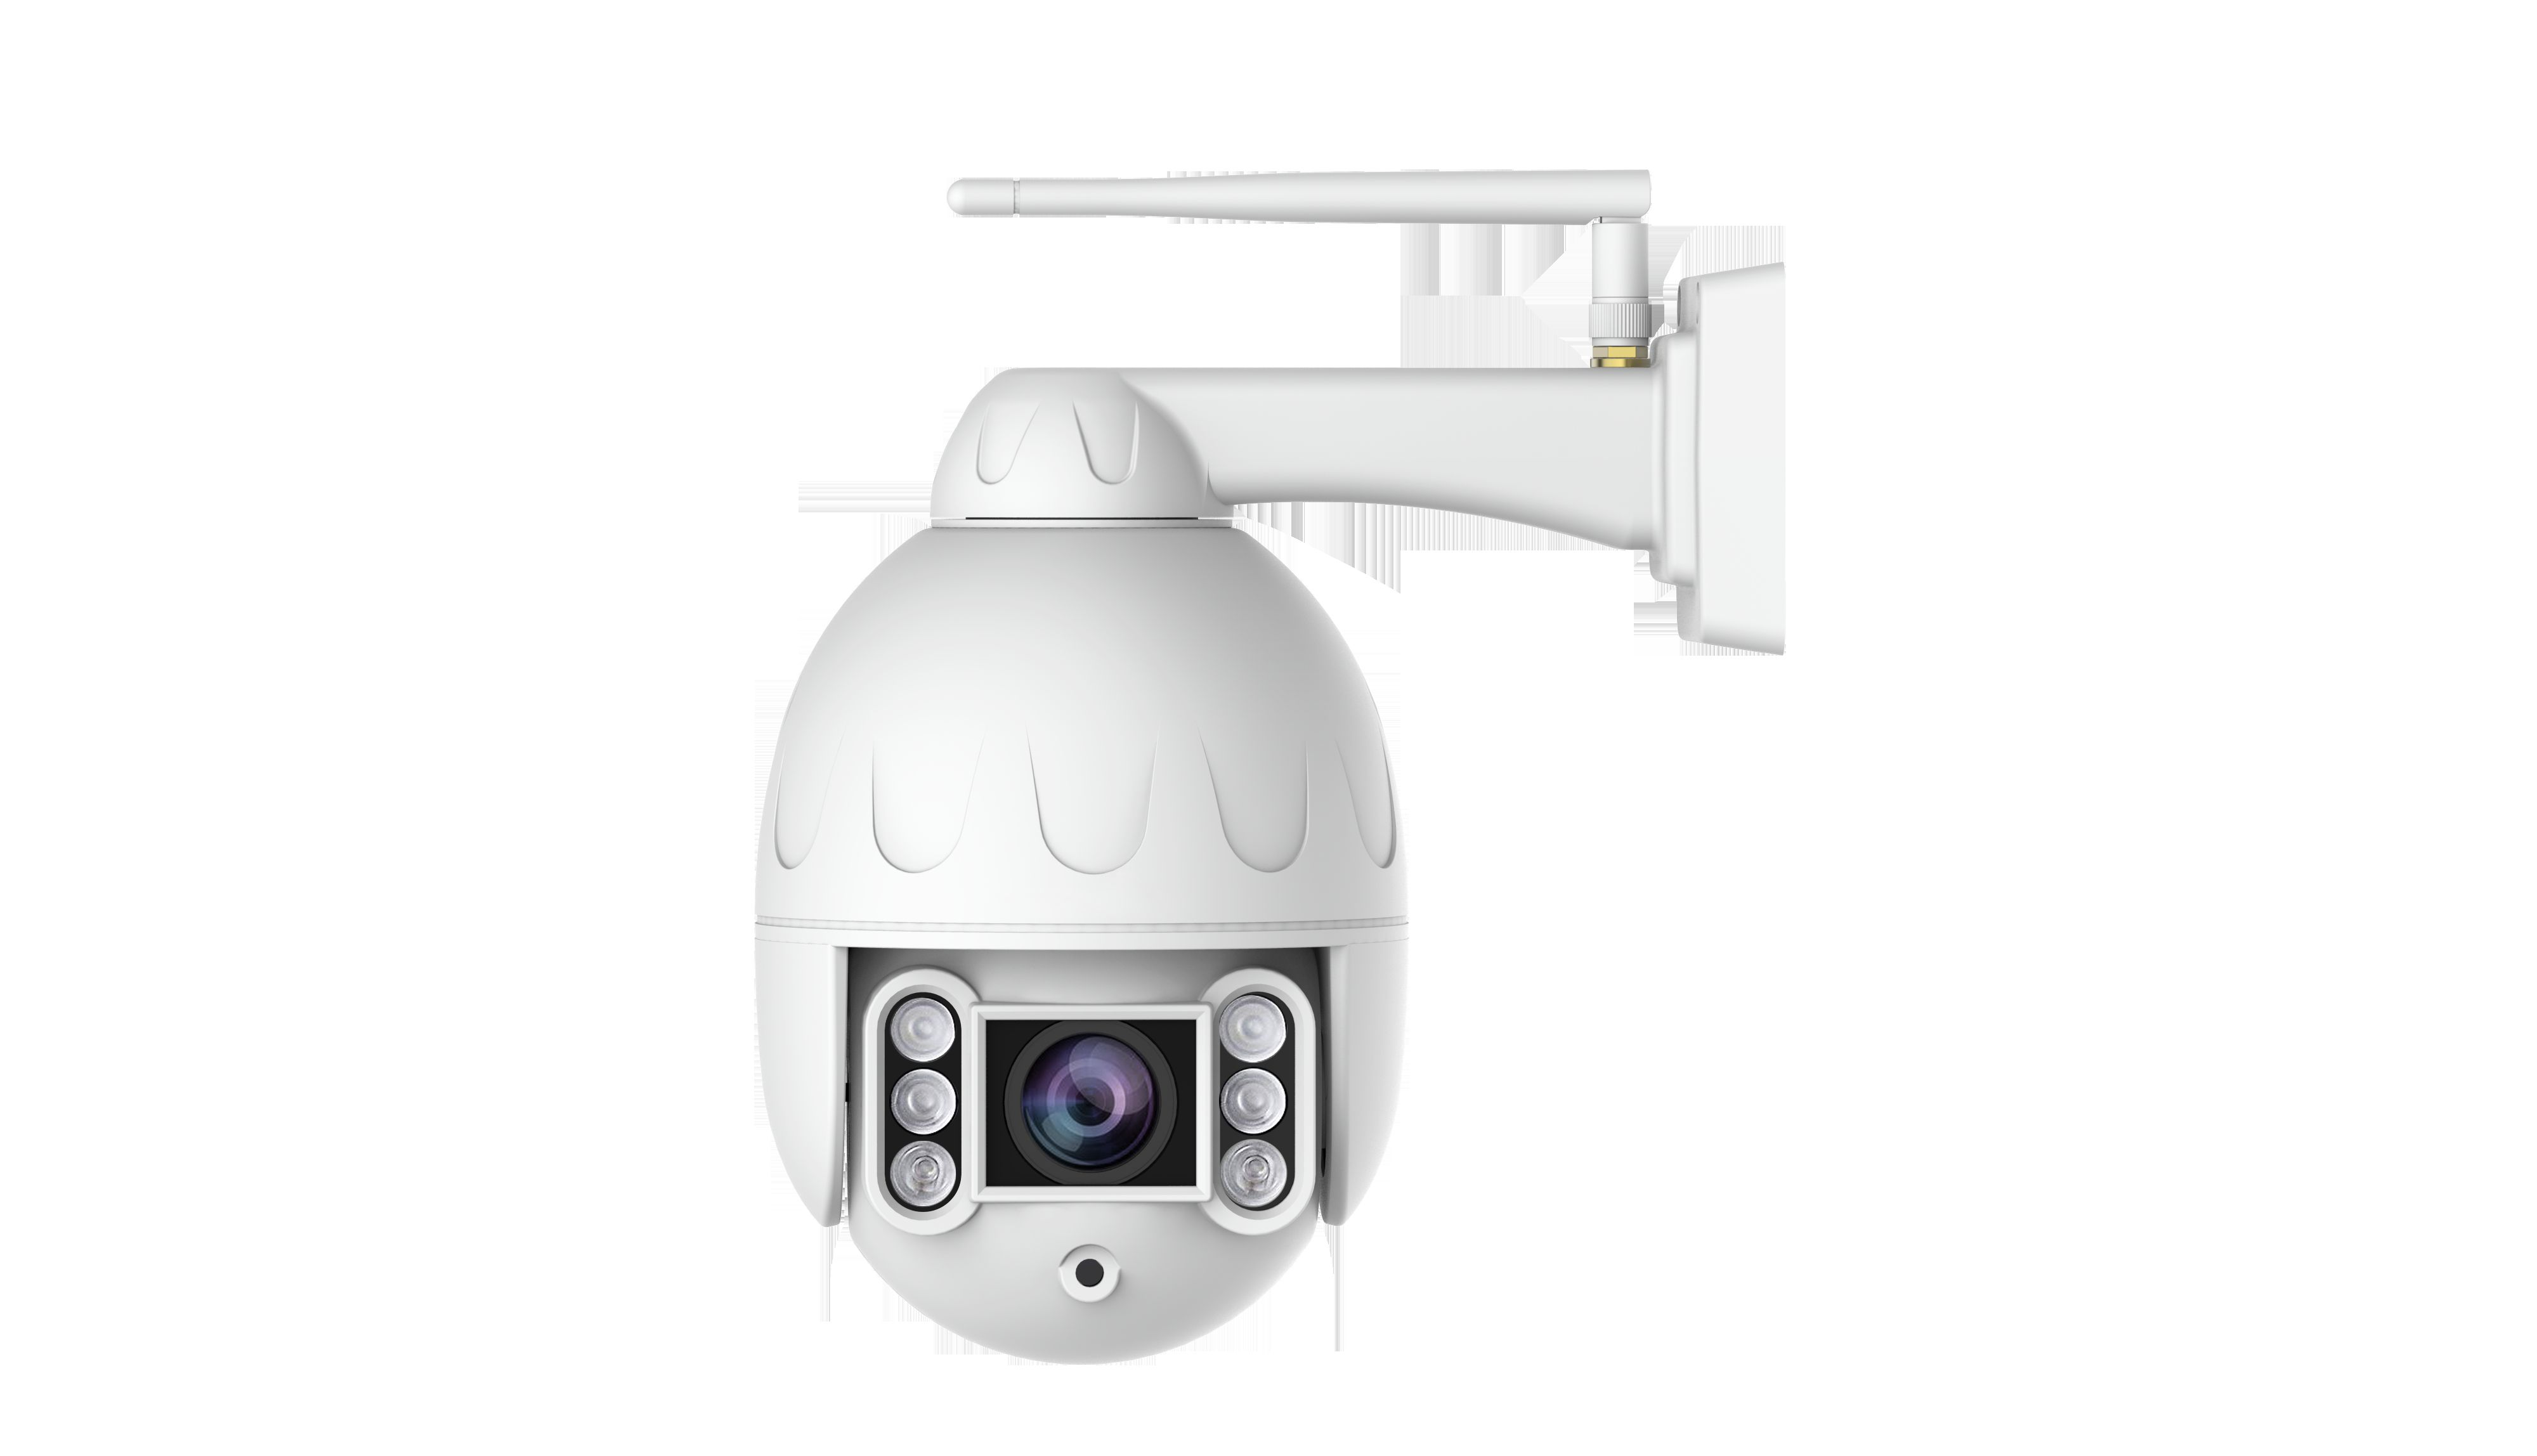 This is the one for the surveillance camera